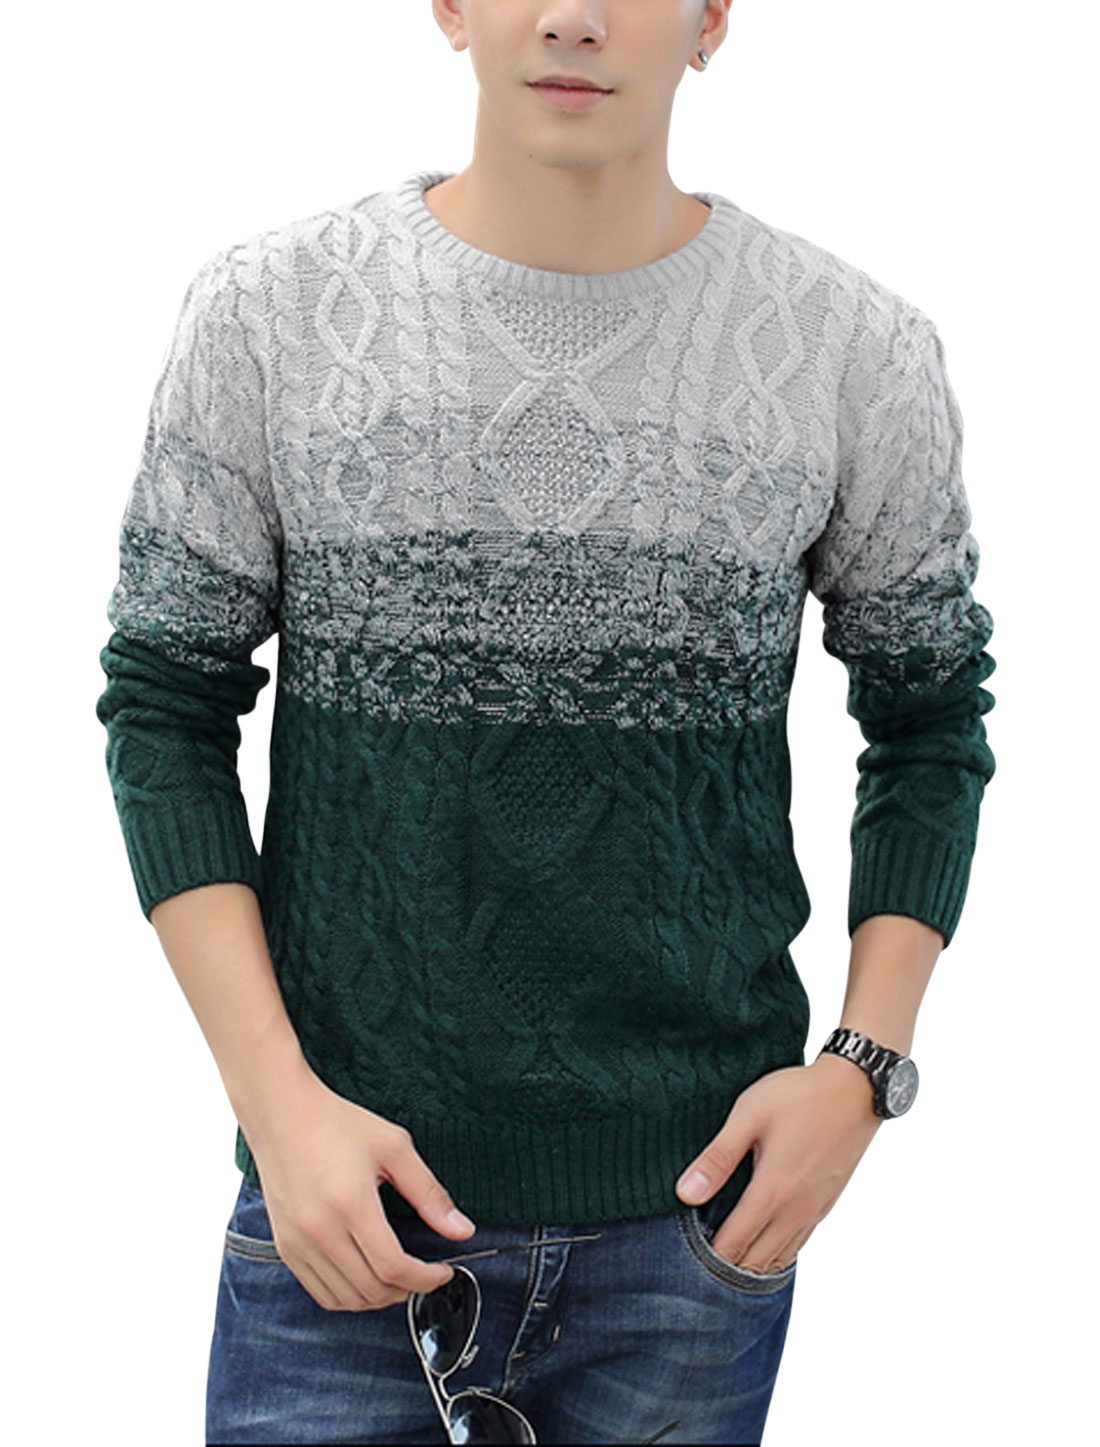 Men Round Neck Contrast Color Long Sleeves NEW Sweater Light Gray Dark Green S